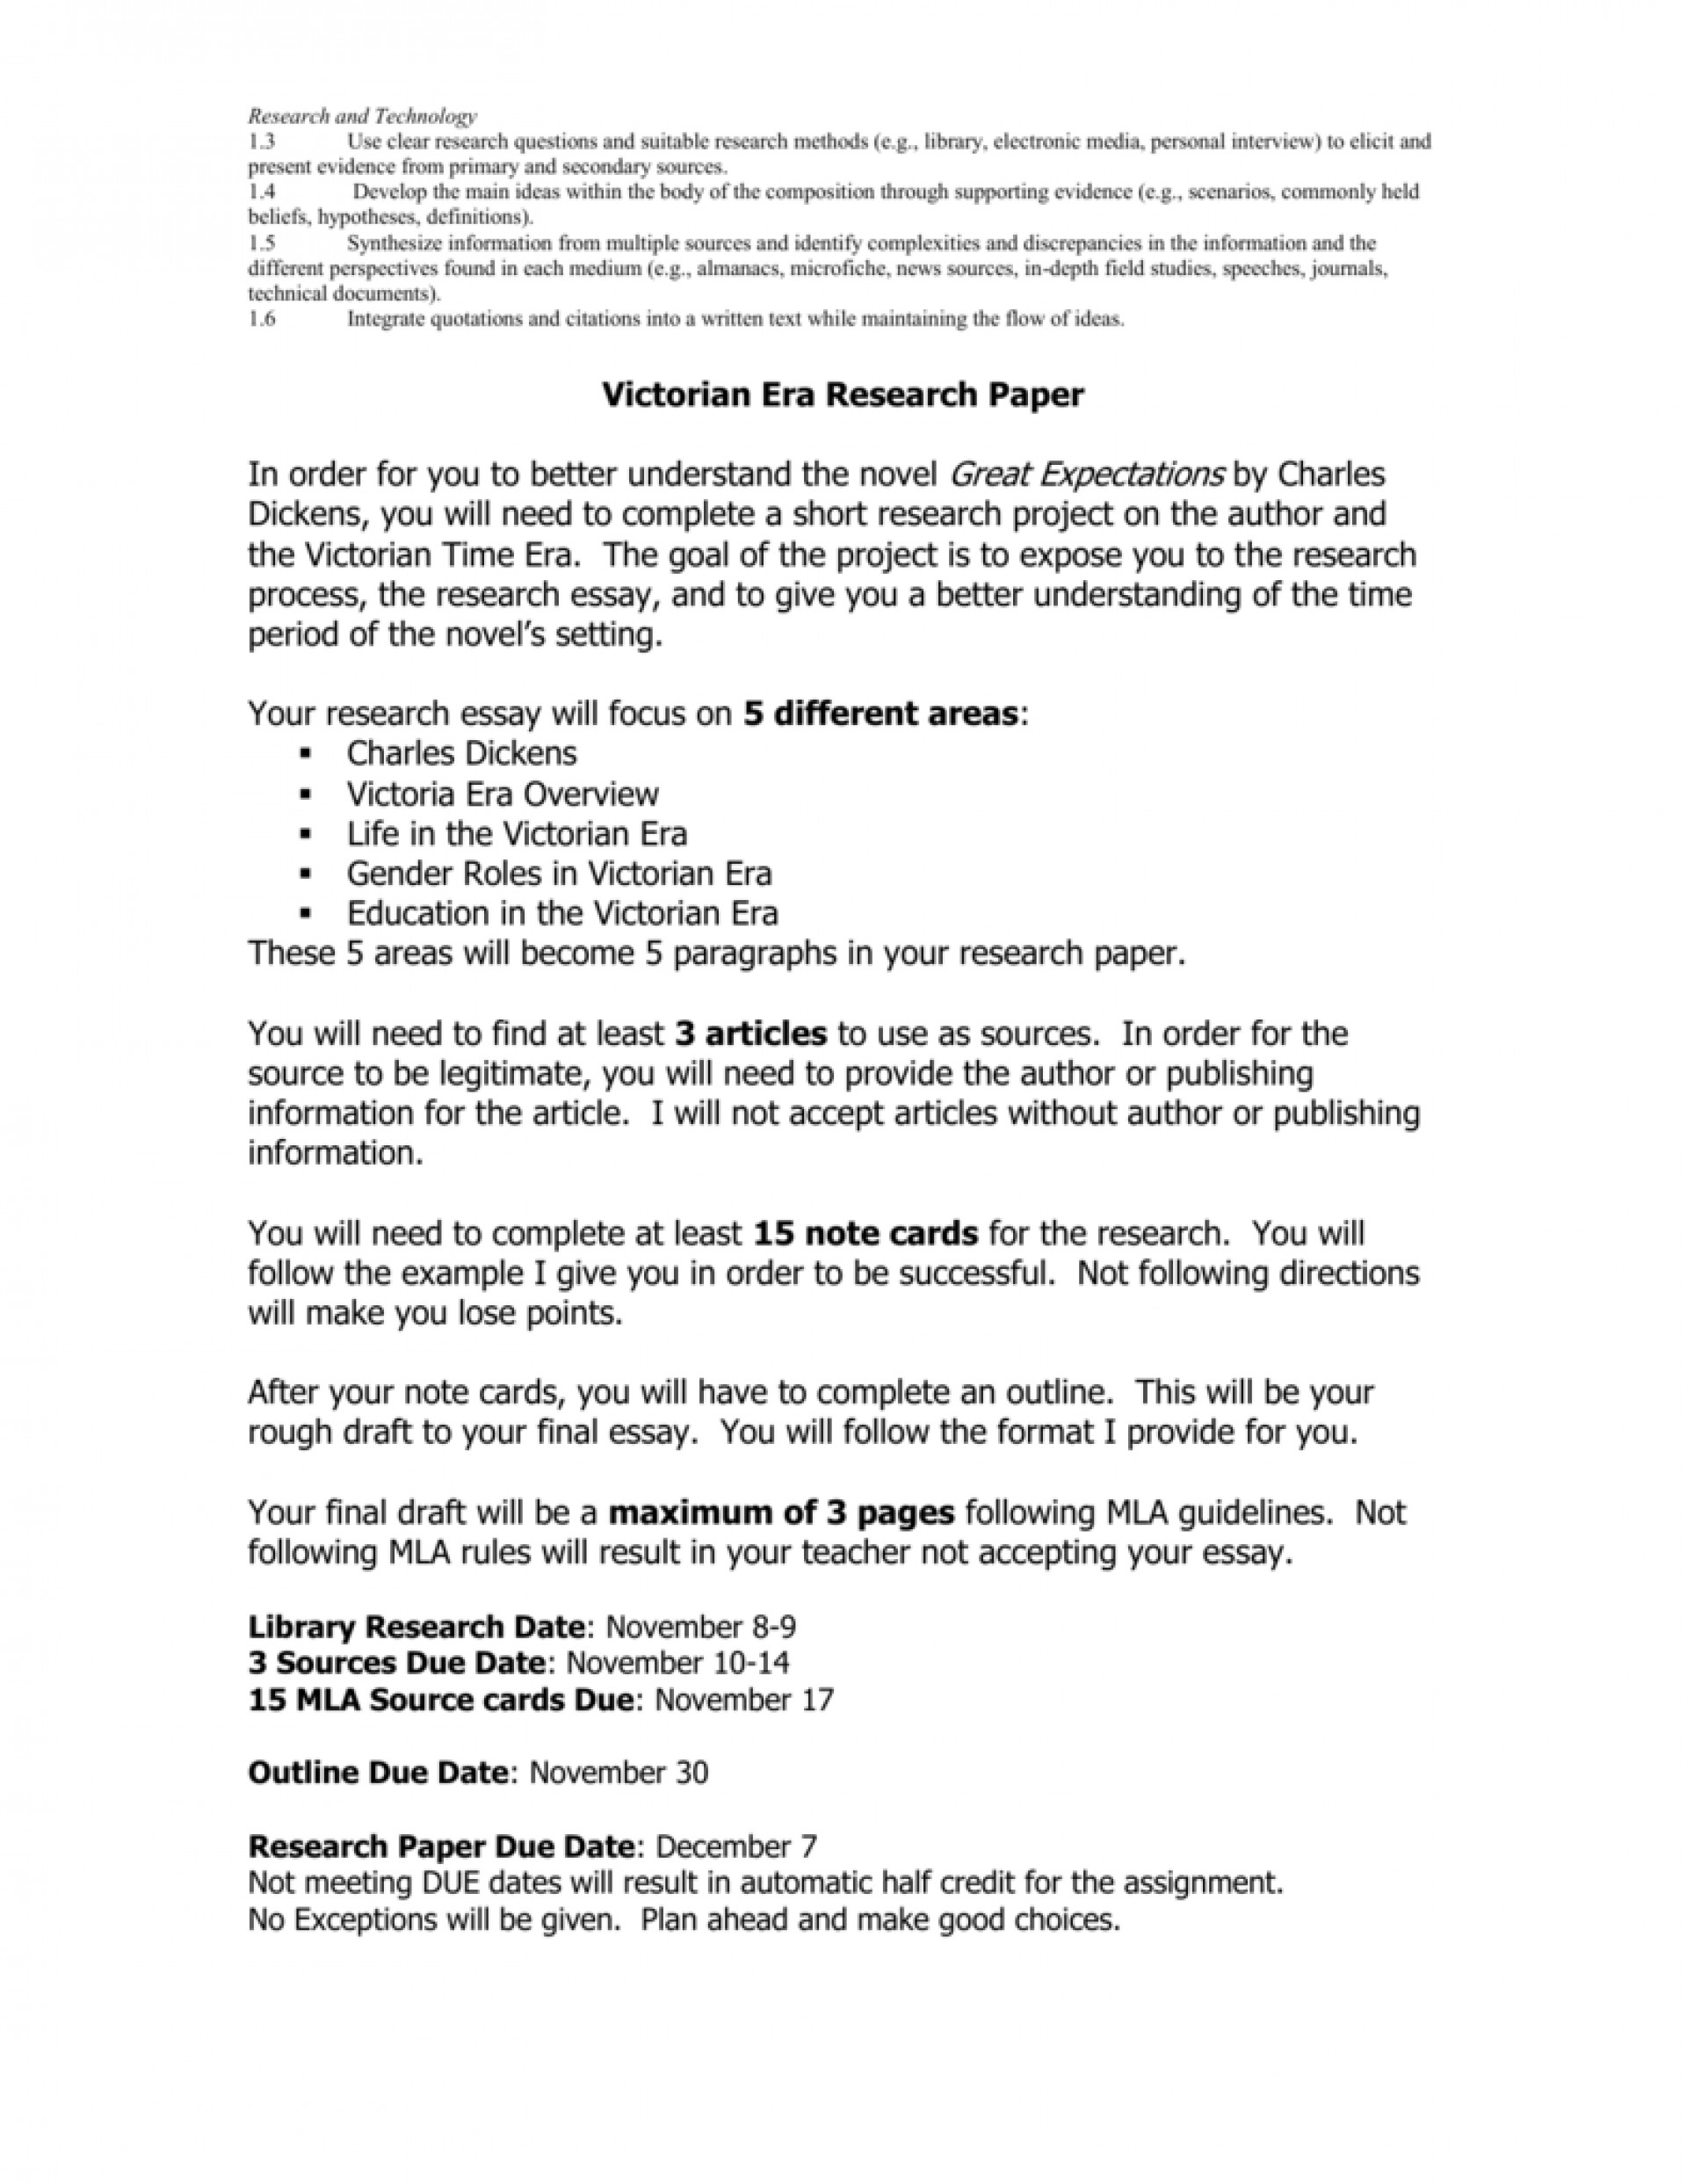 011 008028020 1 Essay Example How To Write Excellent A Research Proposal Paper In Apa Format Mla 1920